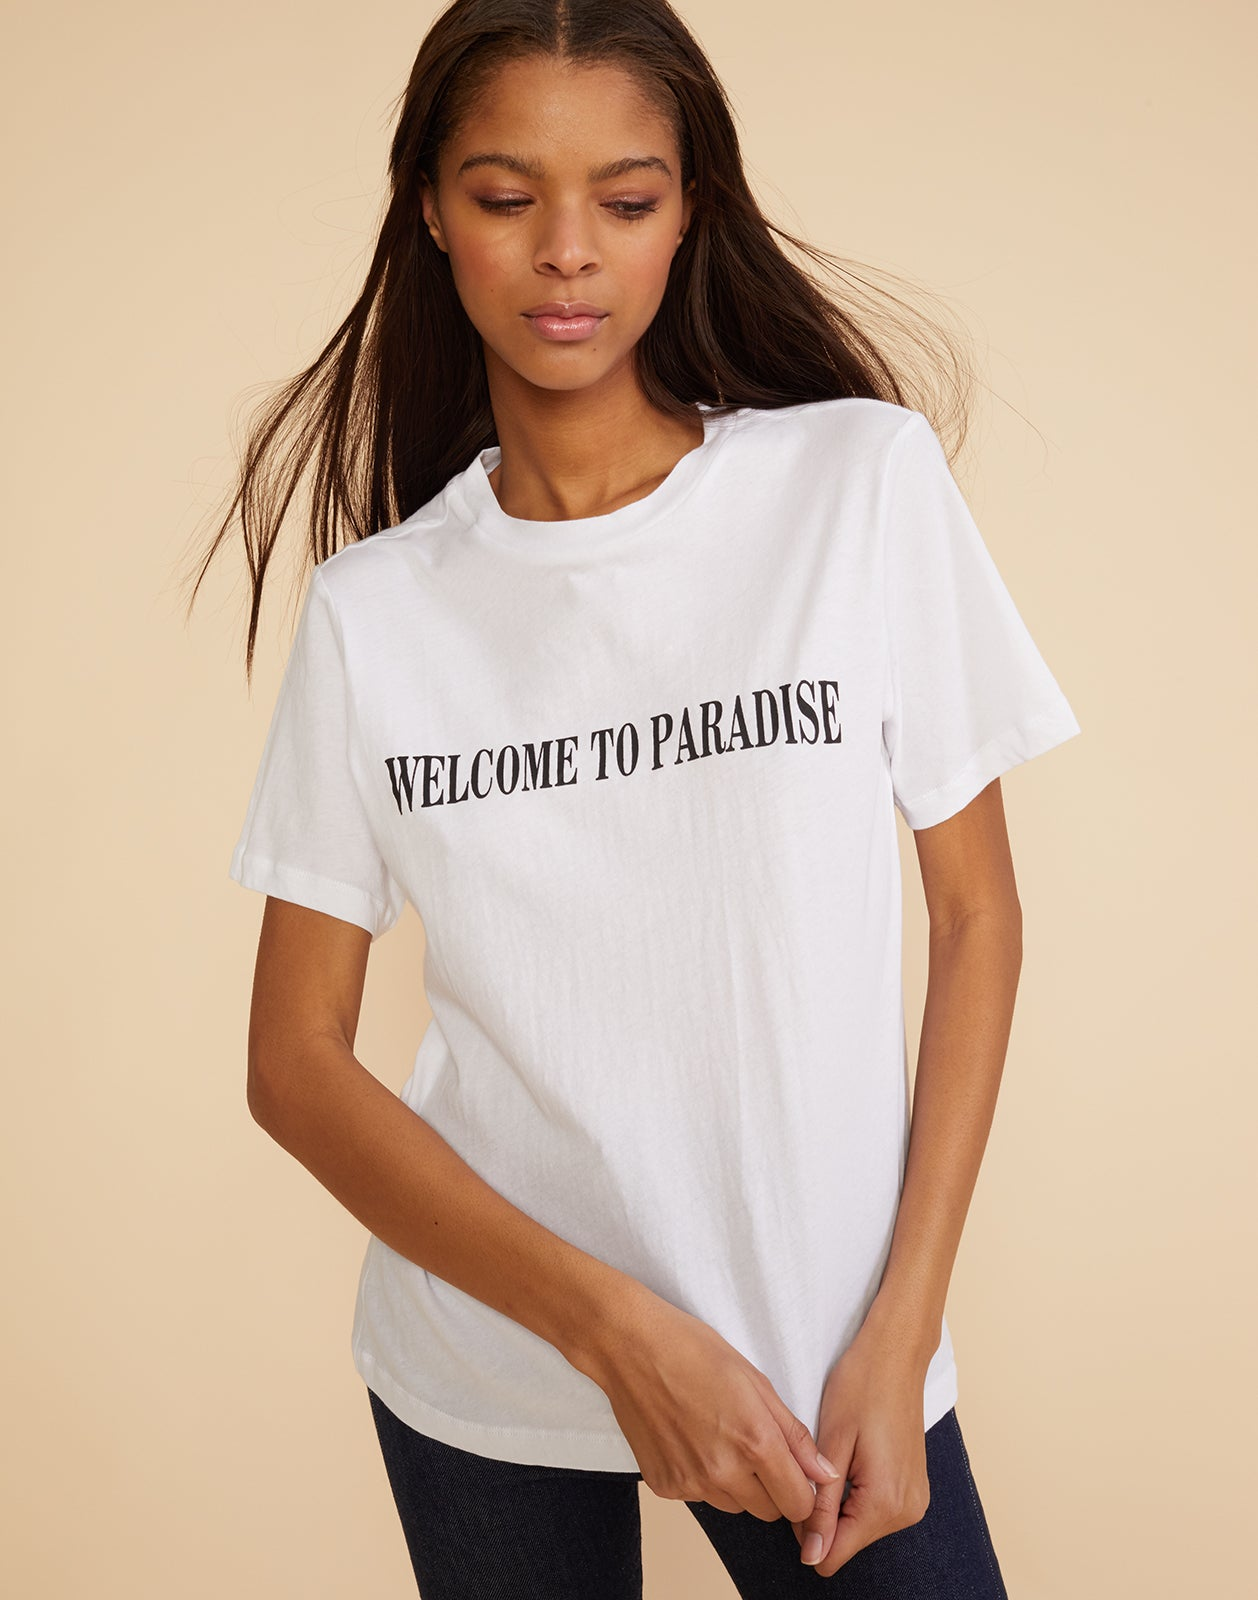 Front view of the soft crewneck tee with 'welcome to paradise' printed across the front.